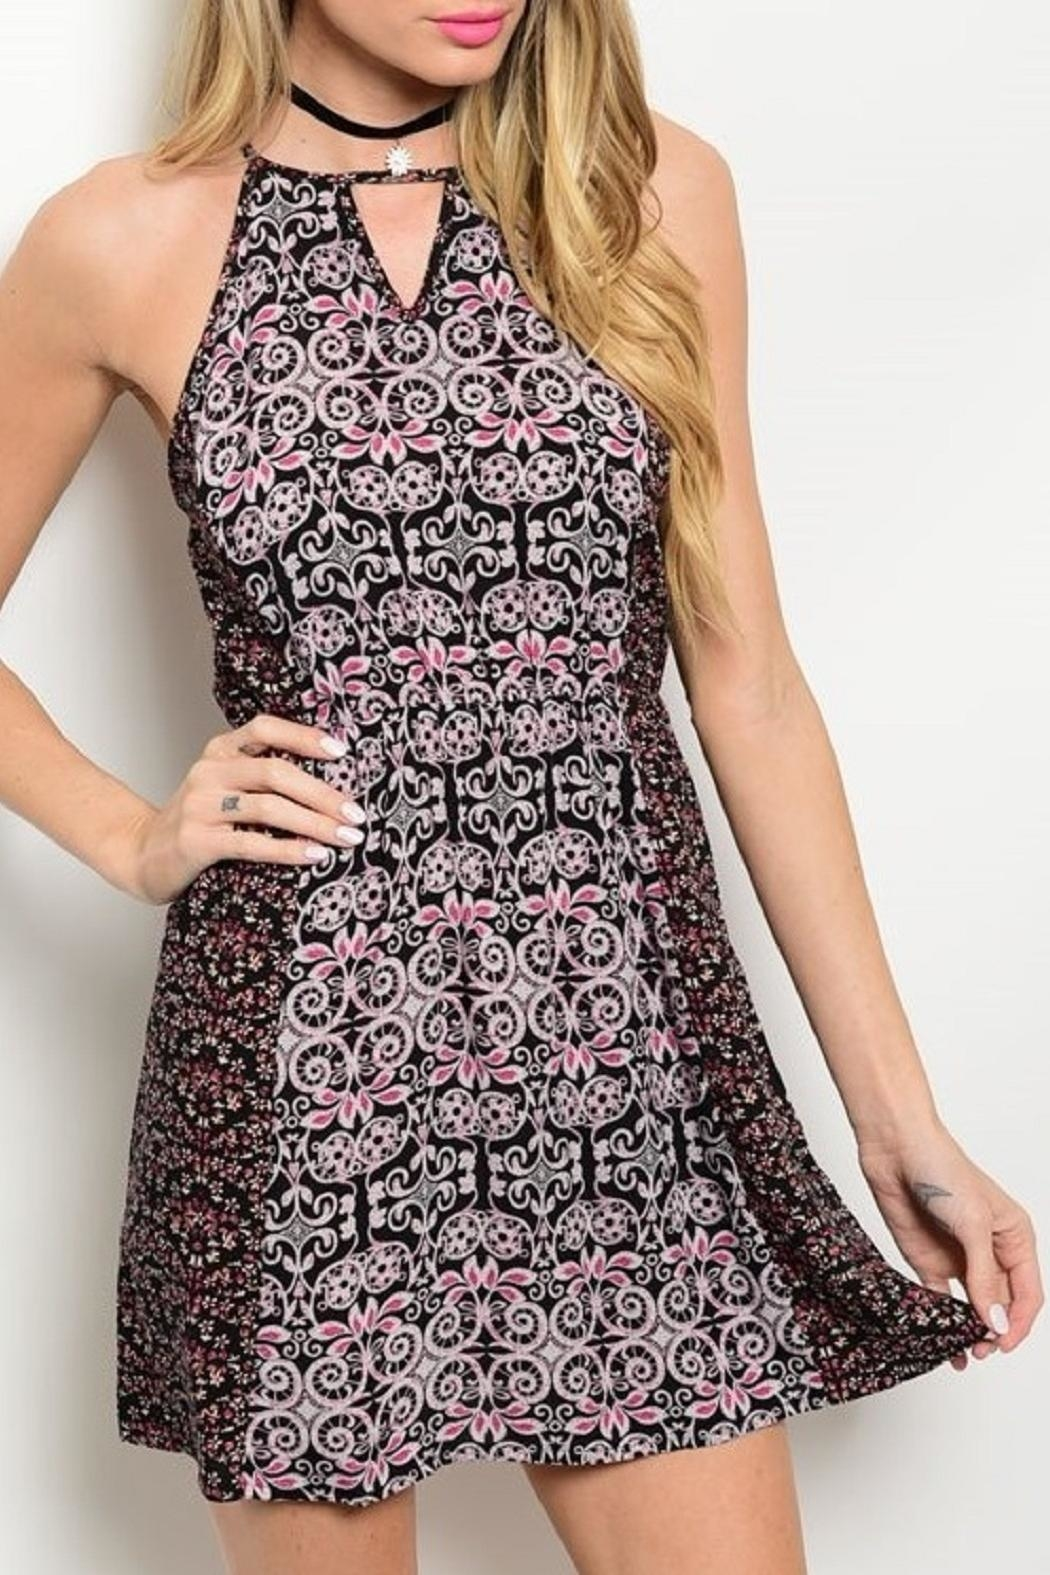 Adore Clothes & More Black/pink Mini Dress - Front Cropped Image